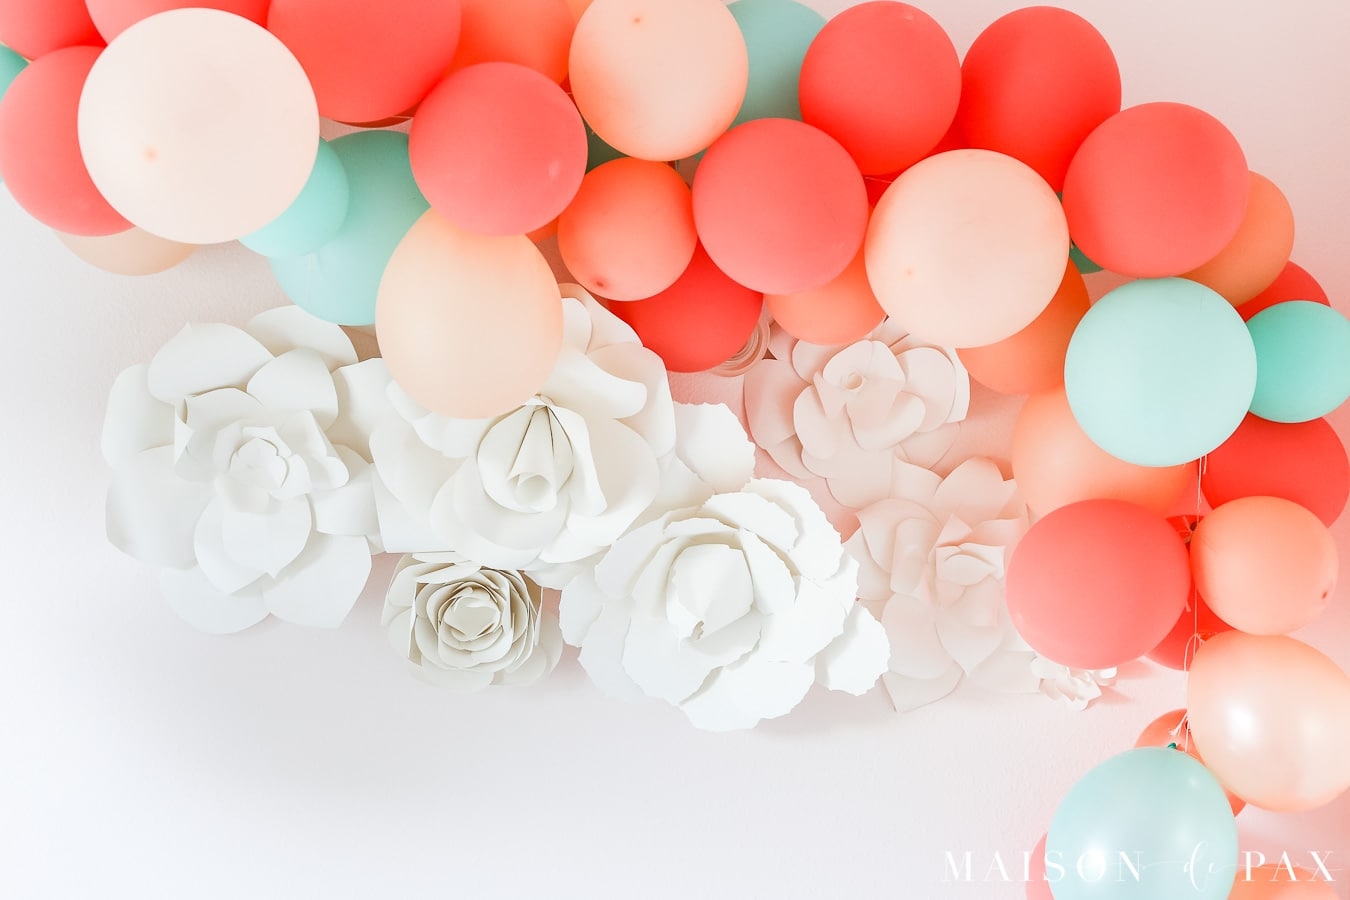 DIY bold and bright balloon garland - Maison de Pax